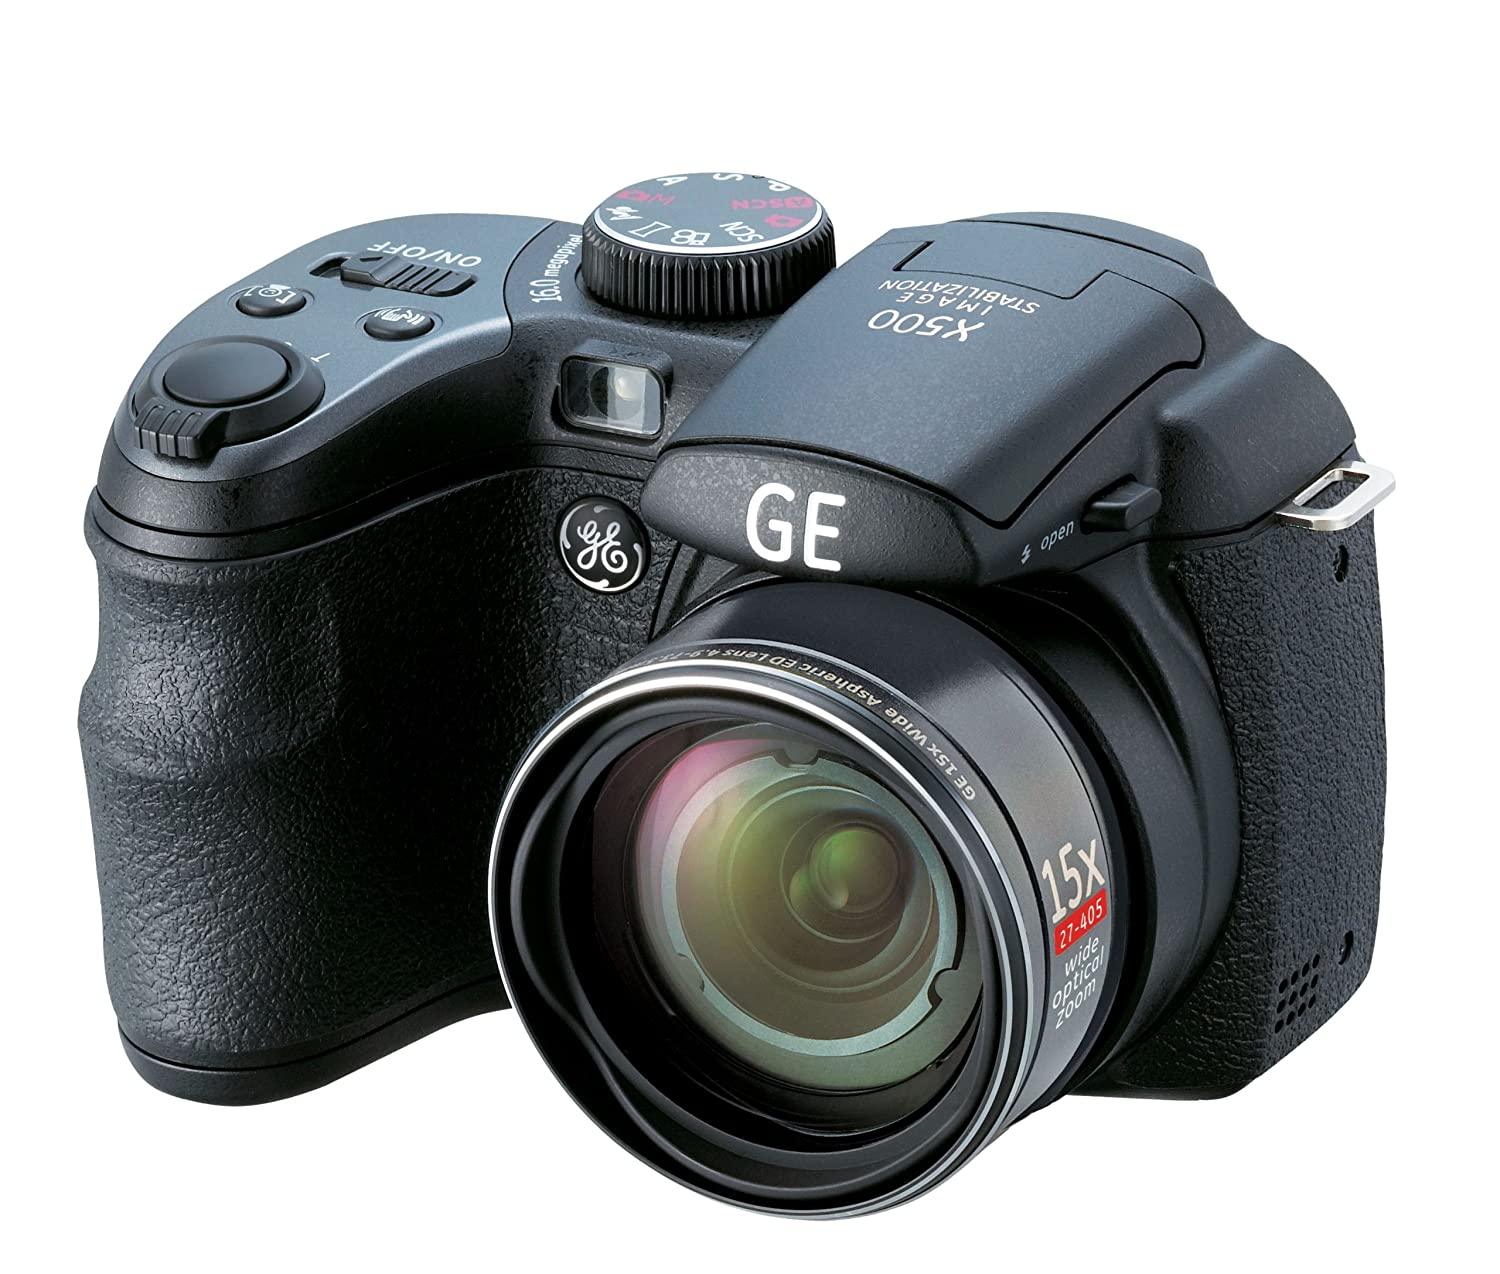 Amazon.com : GE Power Pro X500-BK 16 MP with 15 x Optical Zoom Digital  Camera, Black (OLD MODEL) : Point And Shoot Digital Cameras : Camera & Photo